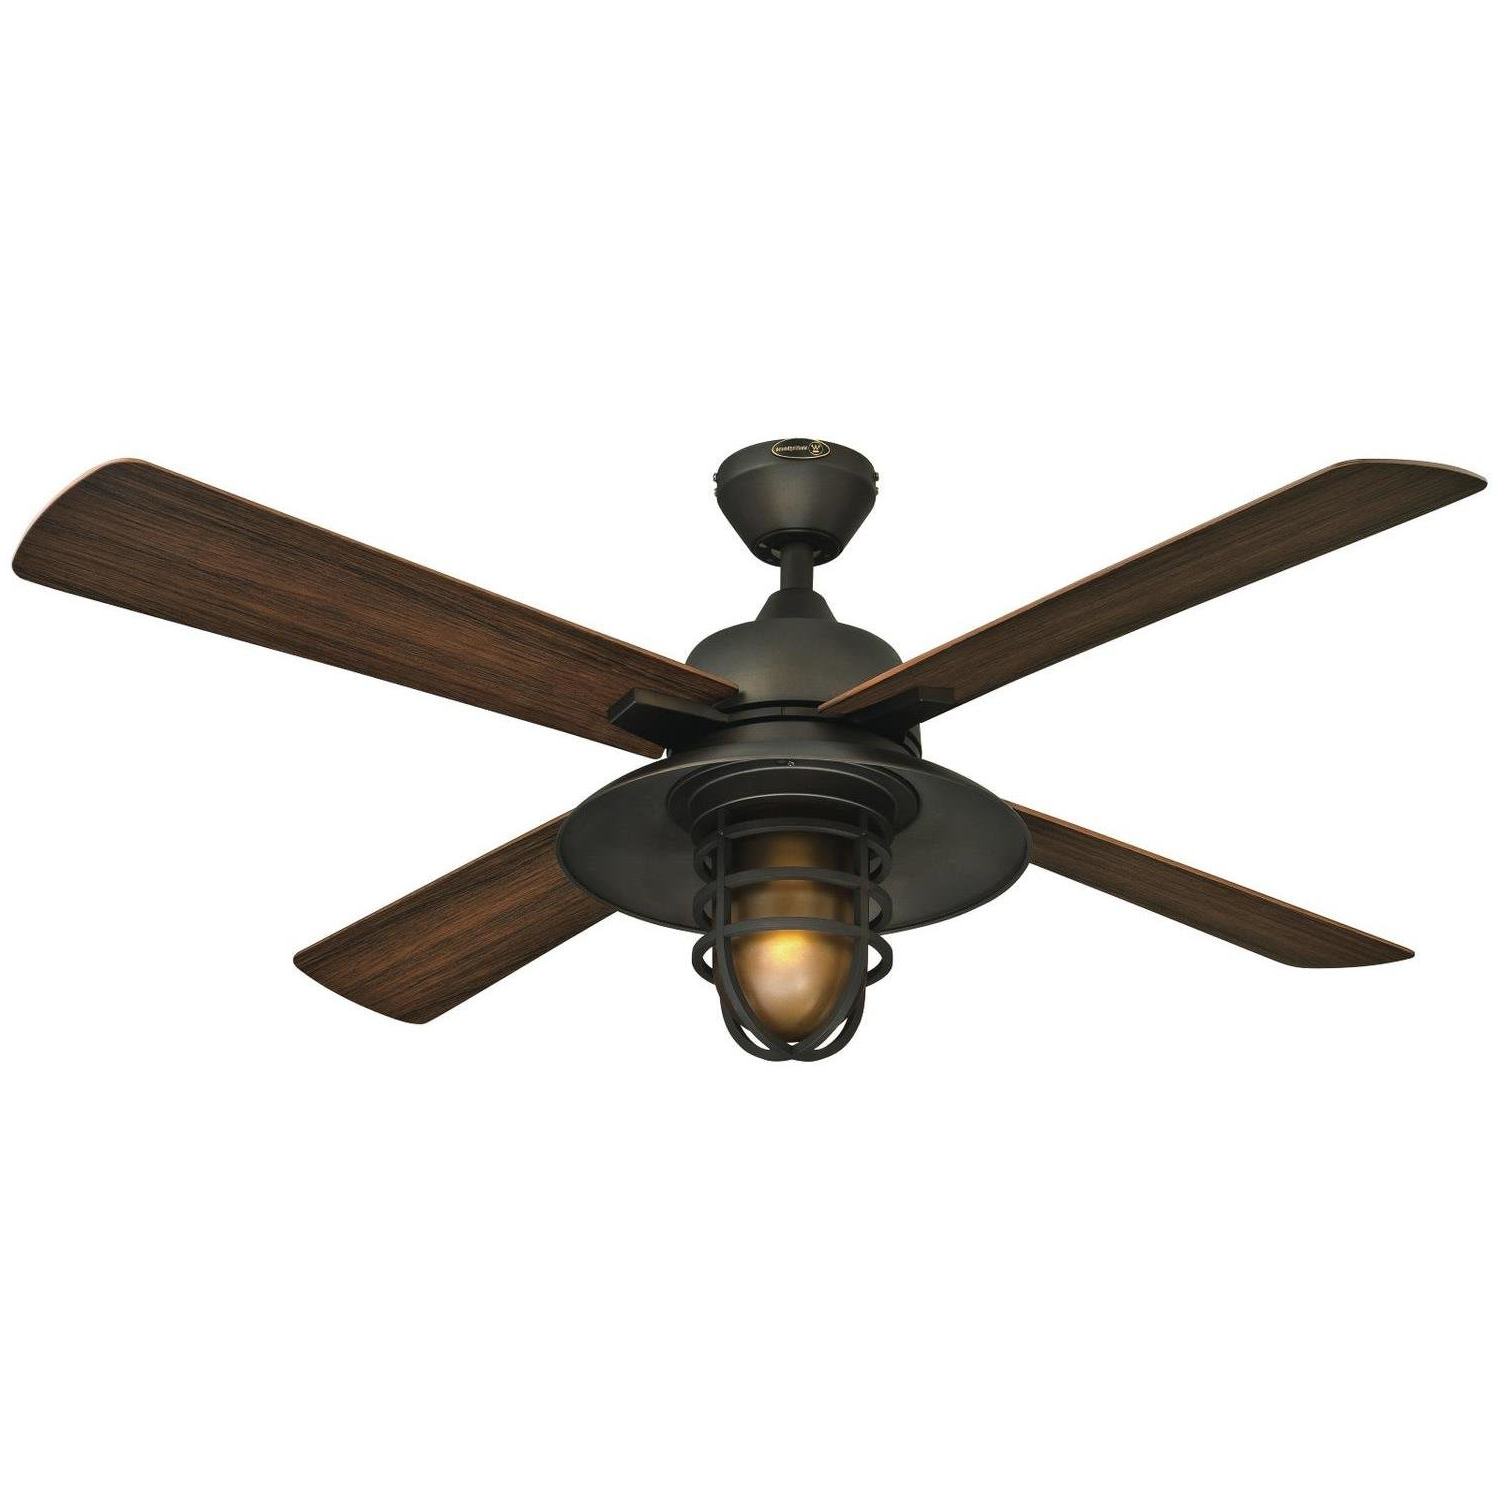 "52"" Barcus 4 Blade Ceiling Fan, Light Kit Included Within Best And Newest Wilburton 3 Blade Outdoor Ceiling Fans (View 12 of 20)"